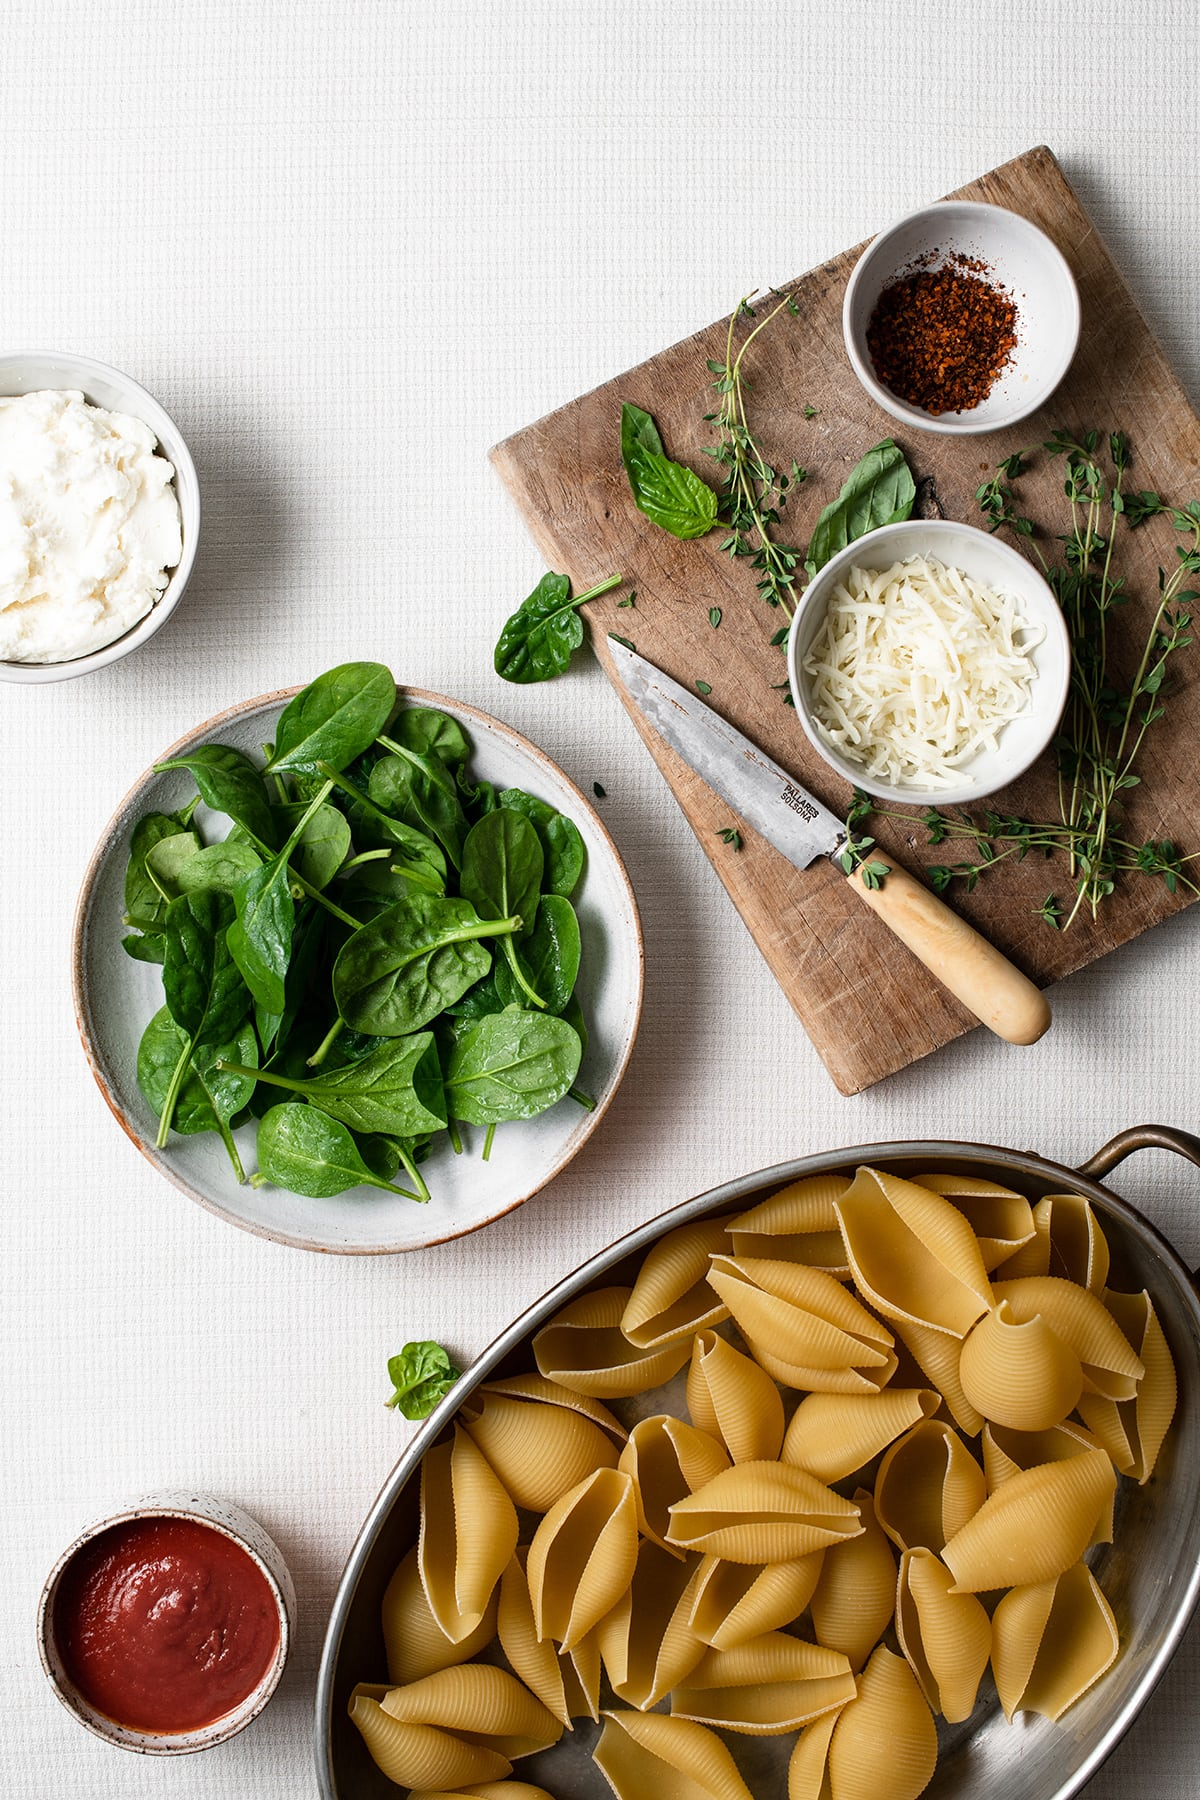 Image of ingredients needed to make stuffed shells.